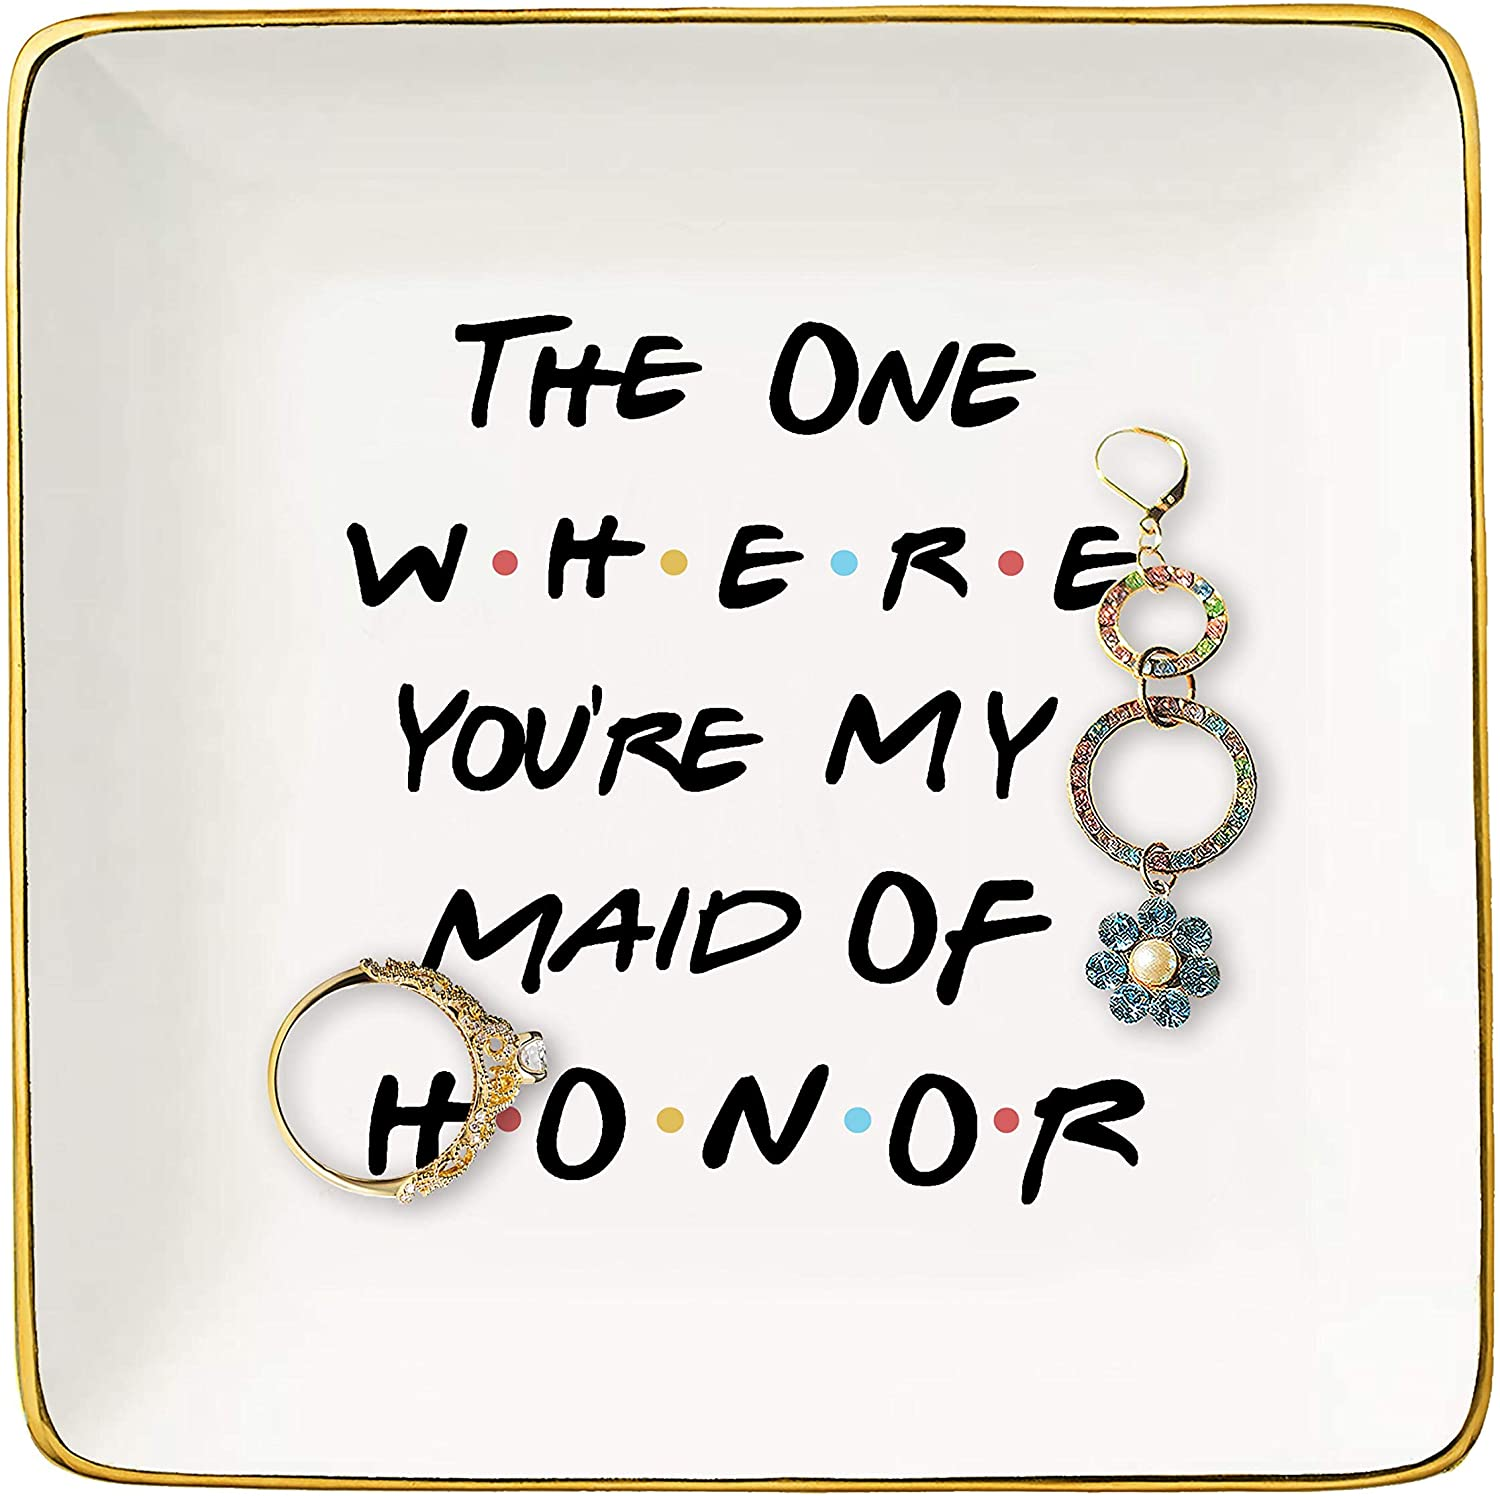 maid-of-honor-gifts-trinket-dish